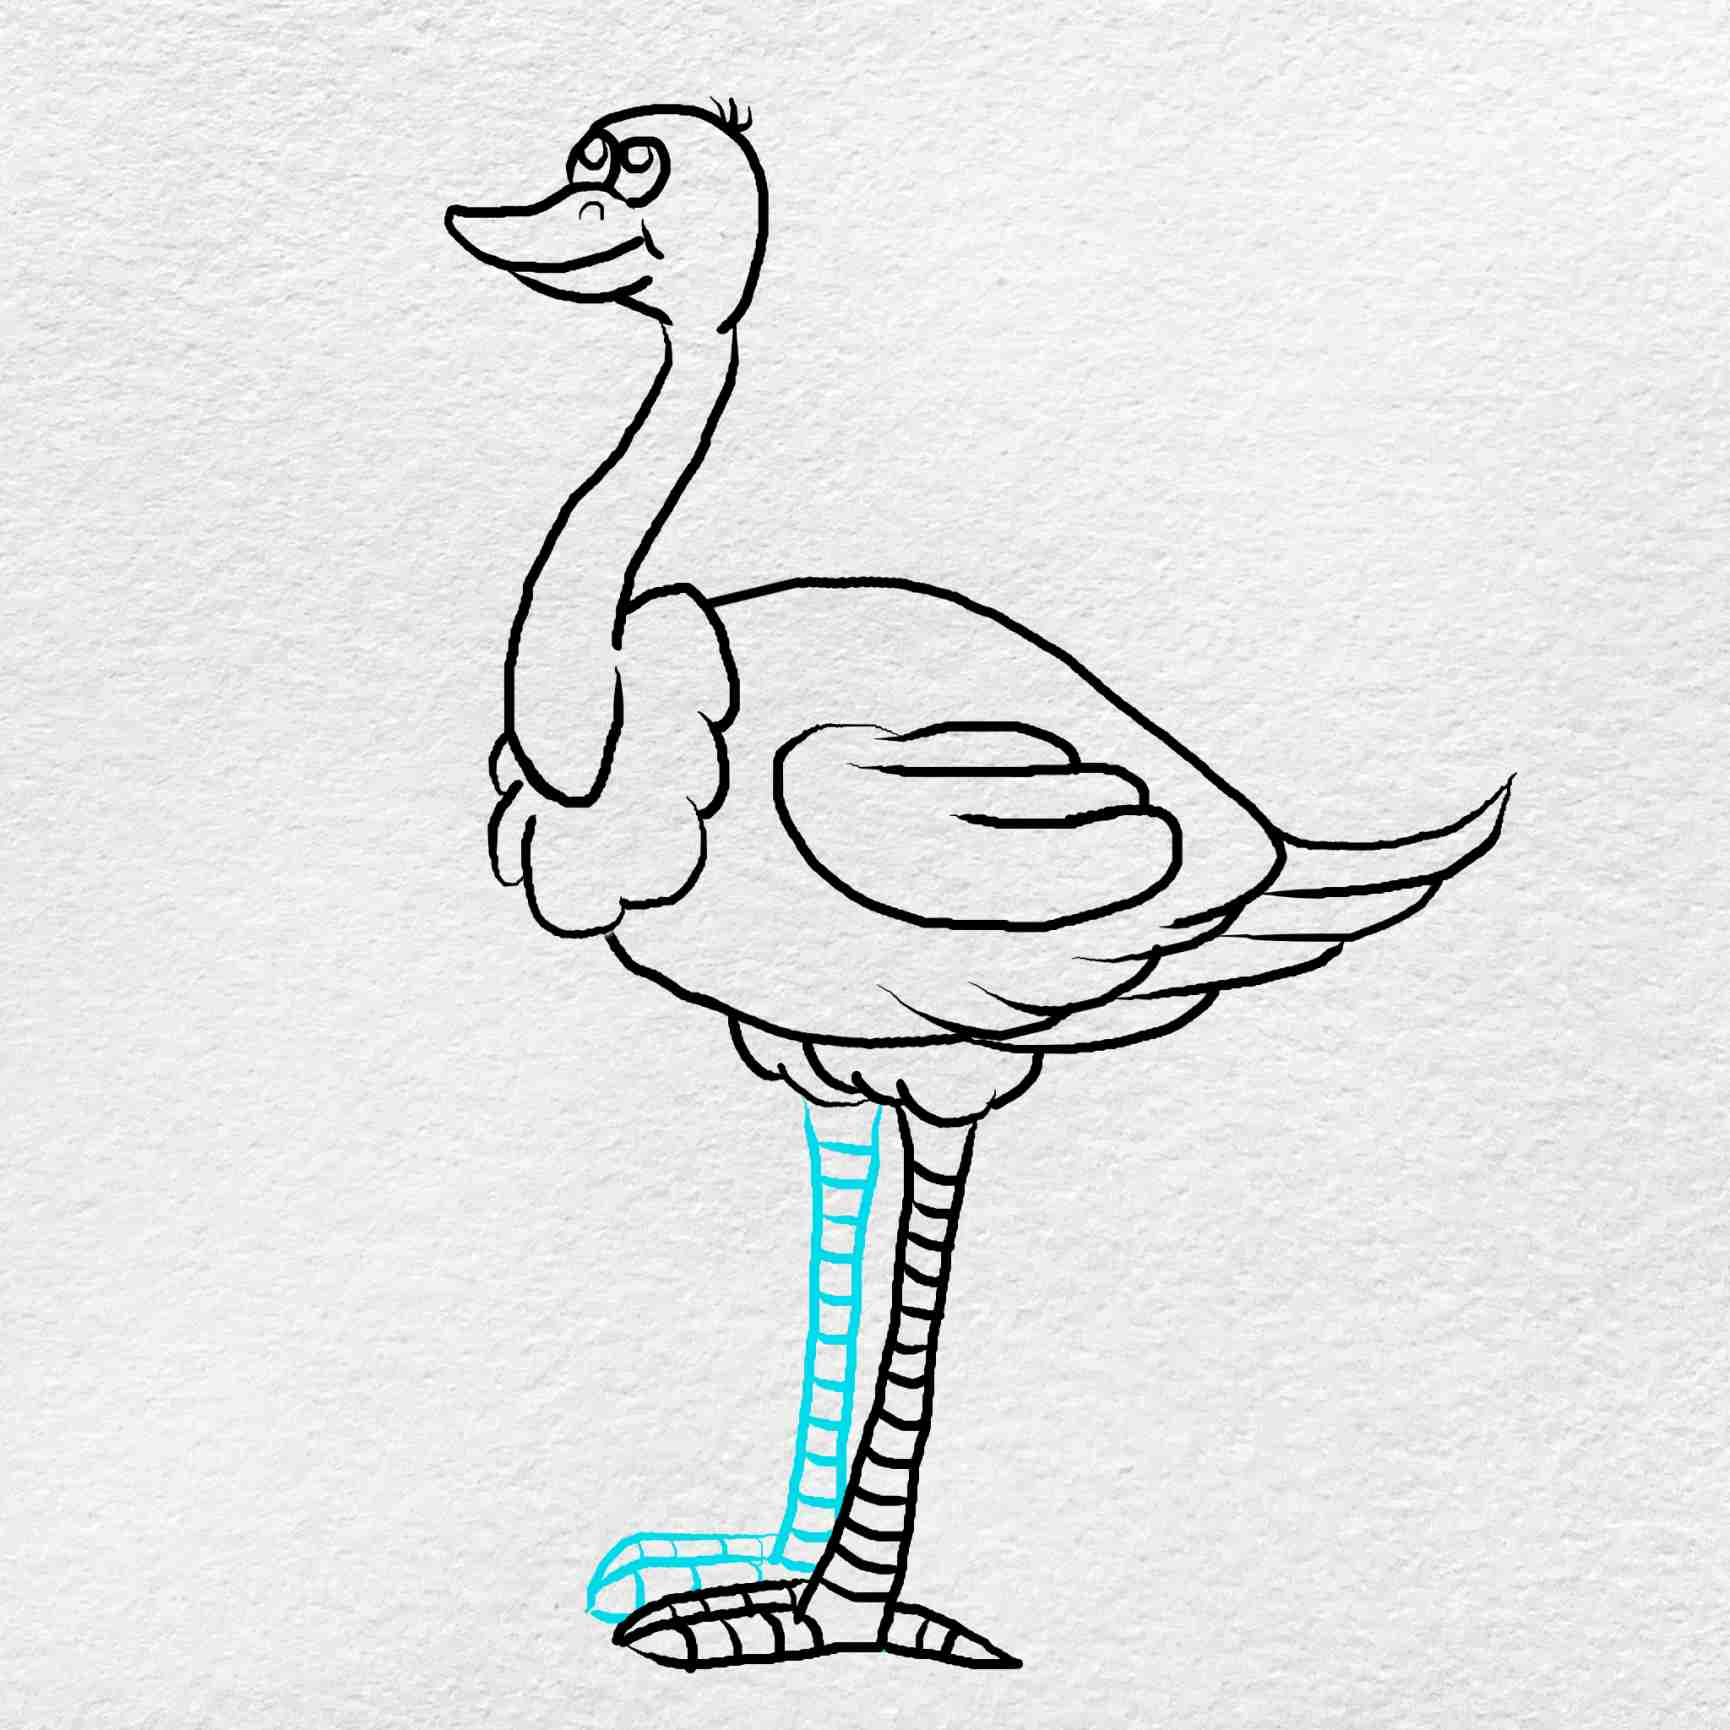 How To Draw An Ostrich: Step 8